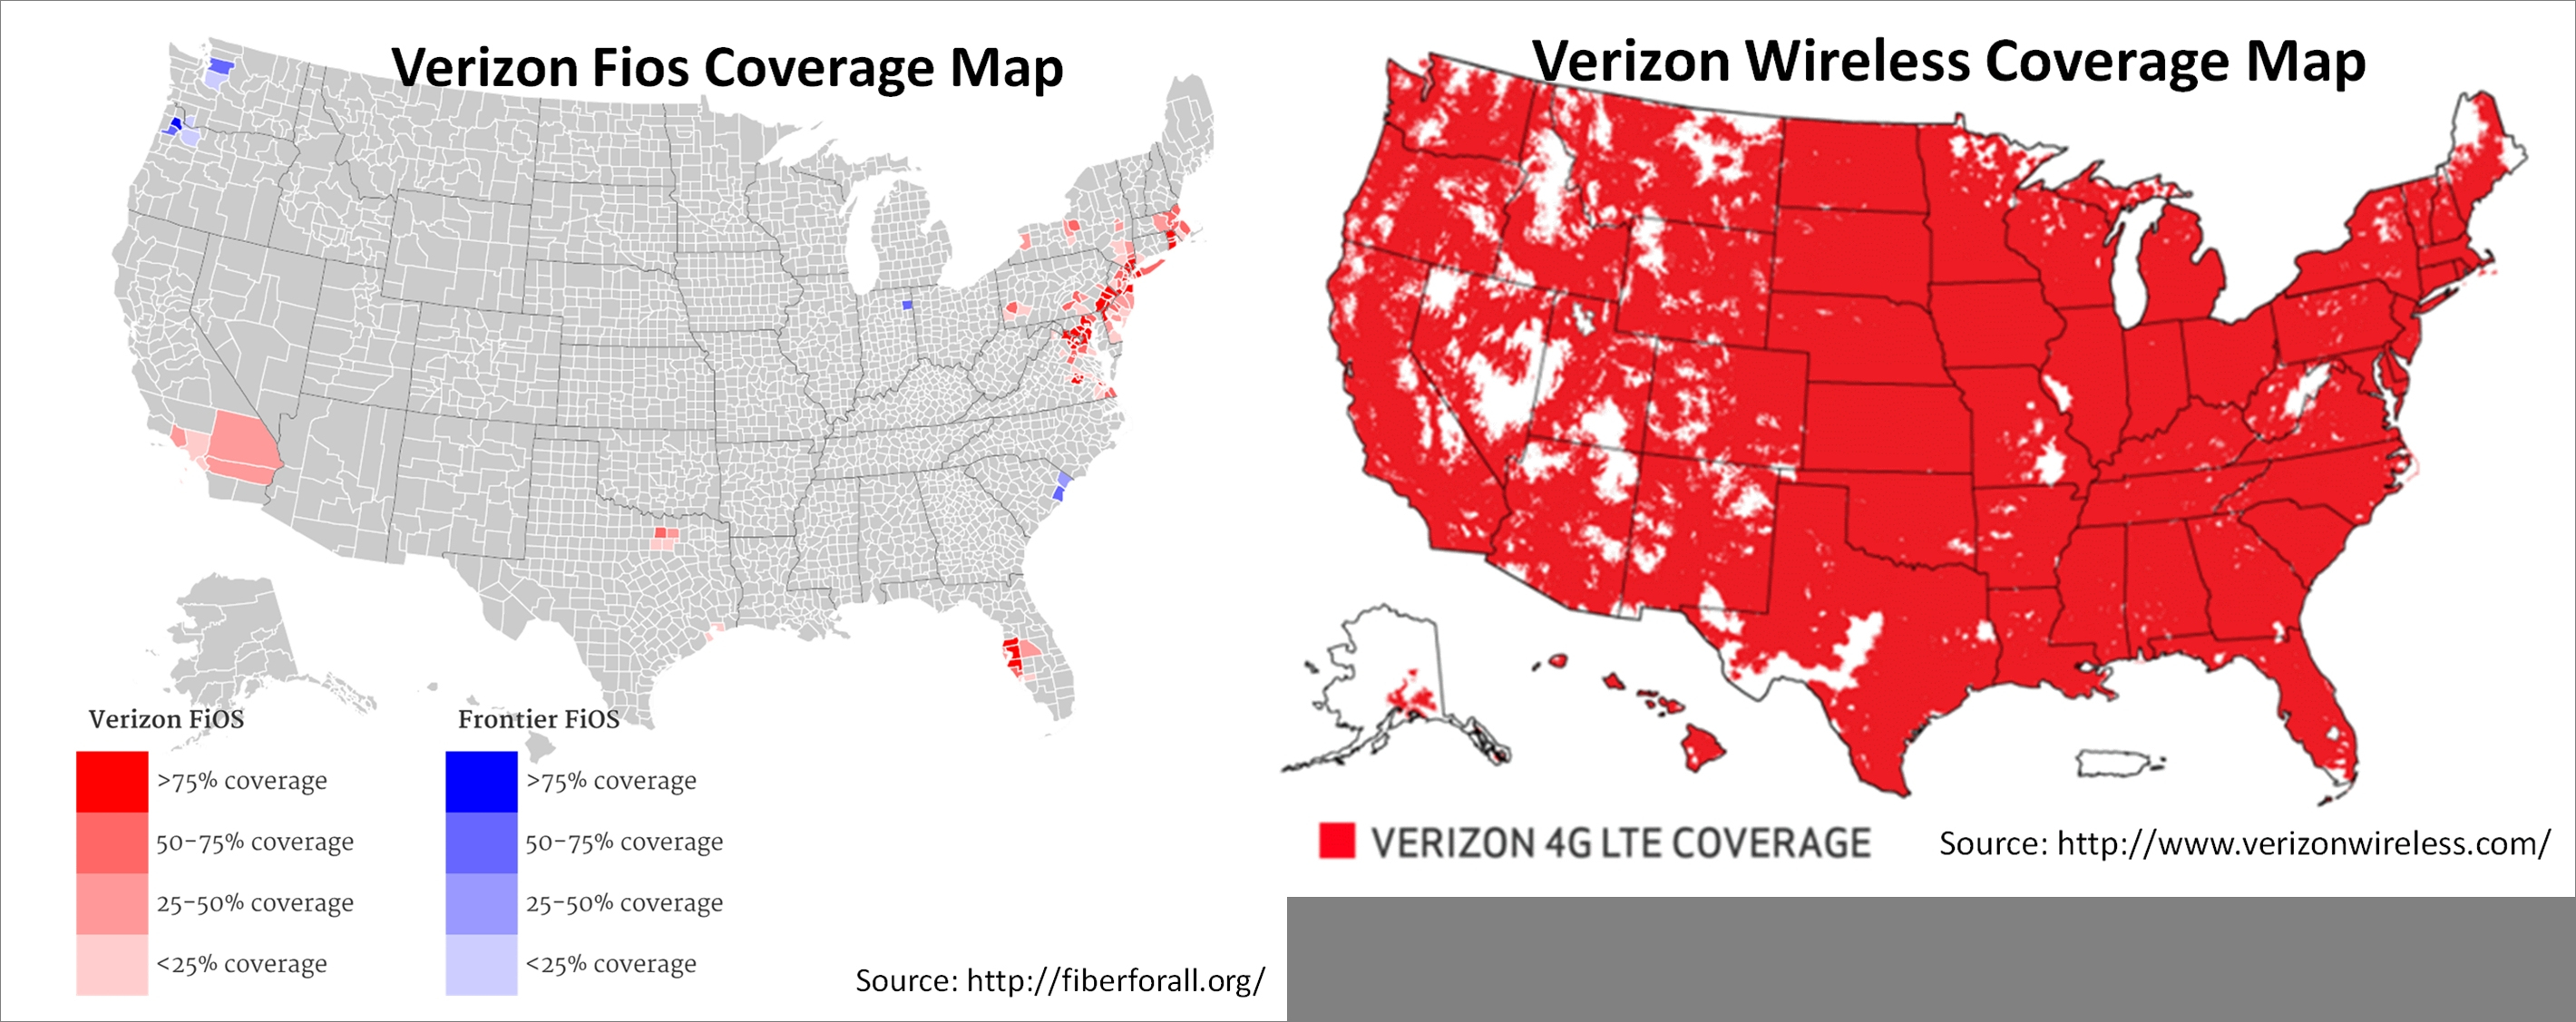 Reference Of Map With States. Verizon Fios Coverage Map - Reference - Verizon Internet Coverage Map Texas